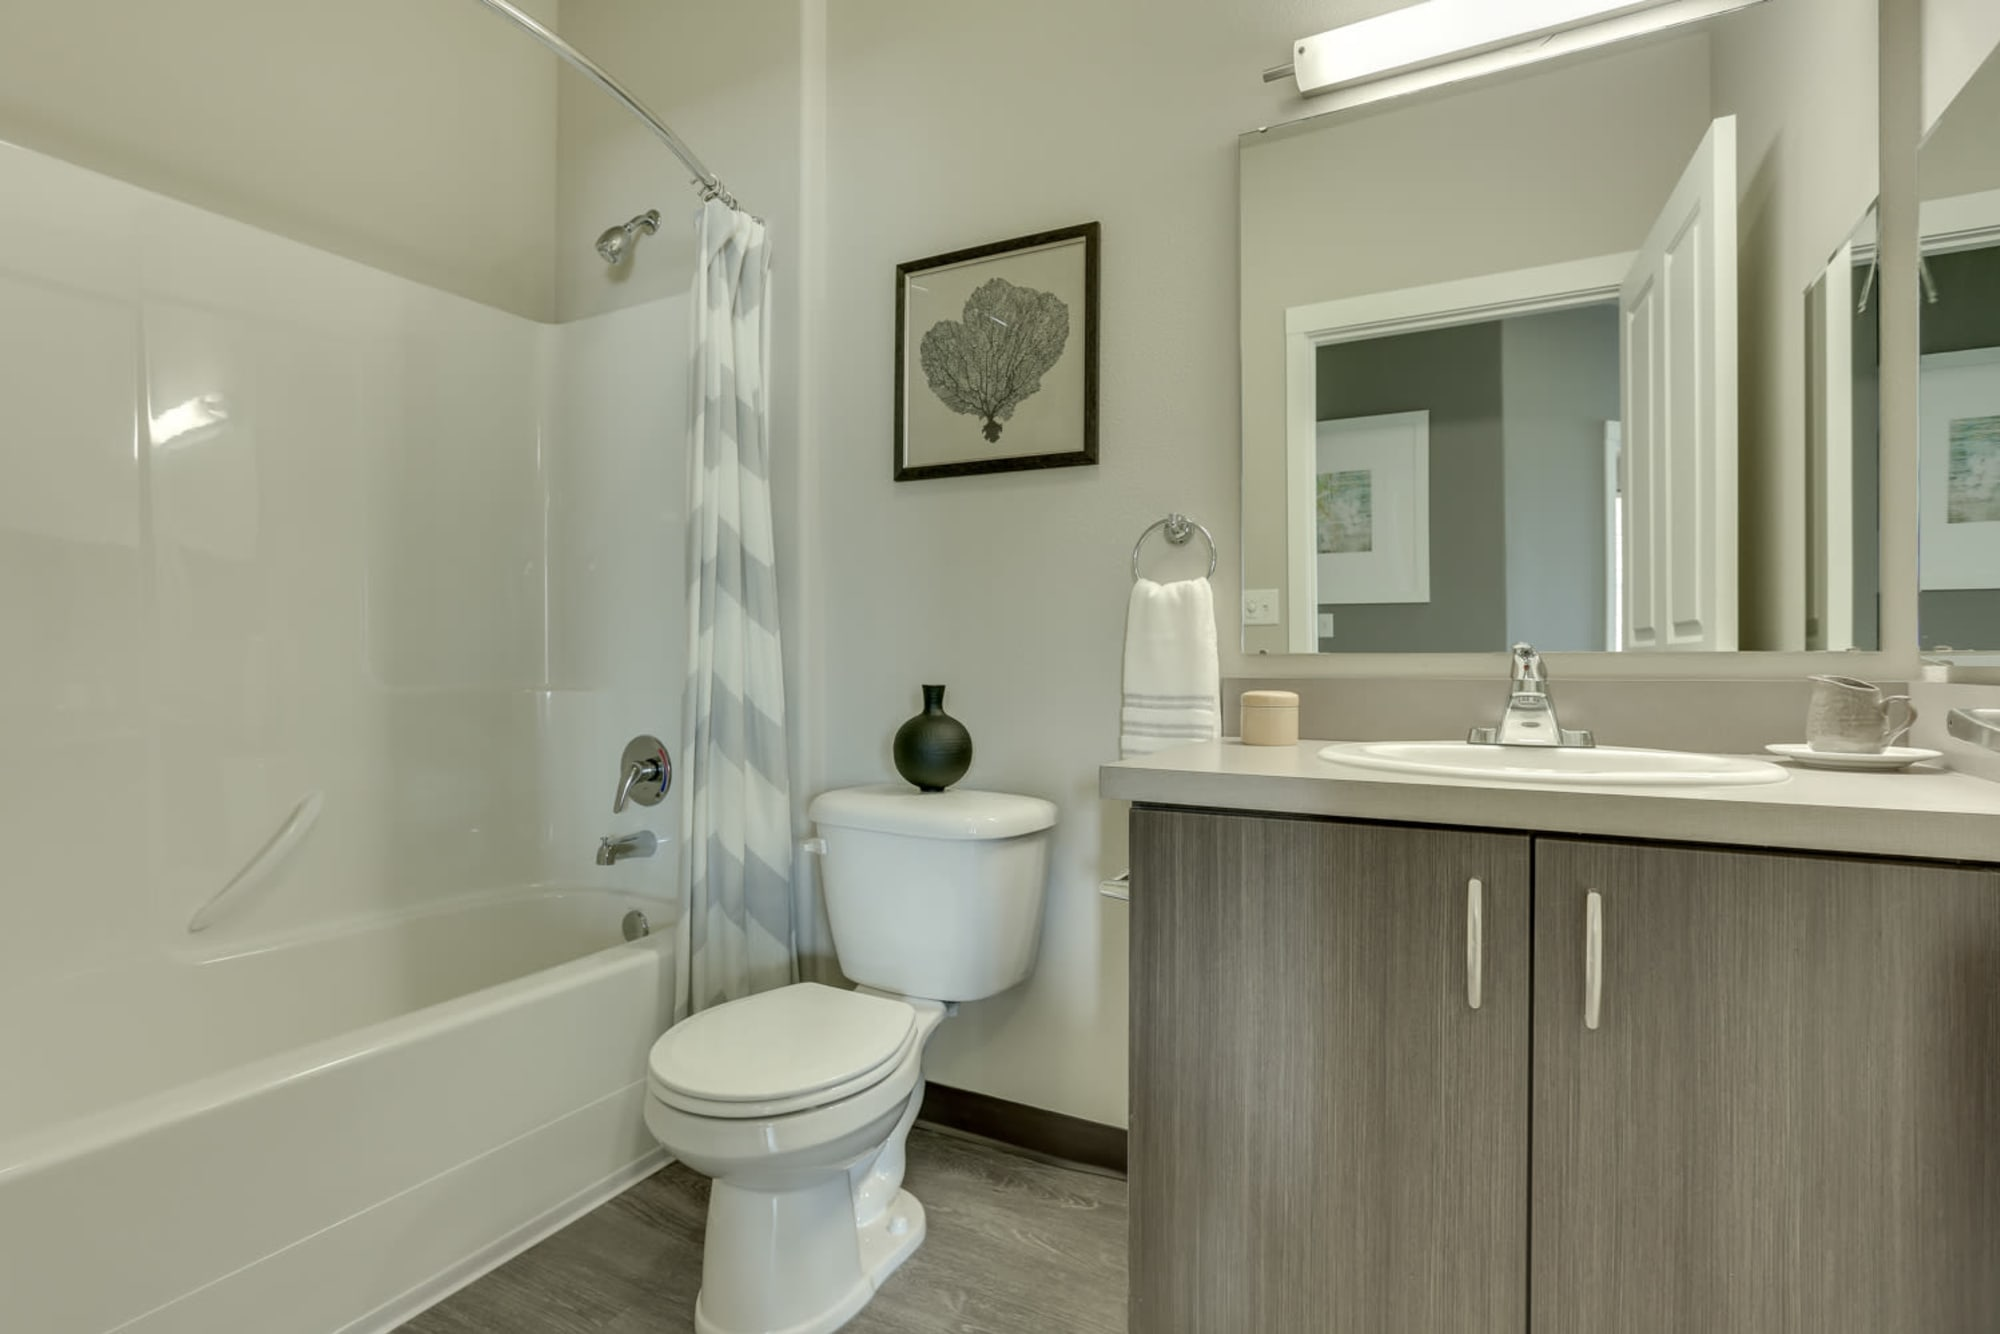 A bathroom at Terrene at the Grove in Wilsonville, Oregon